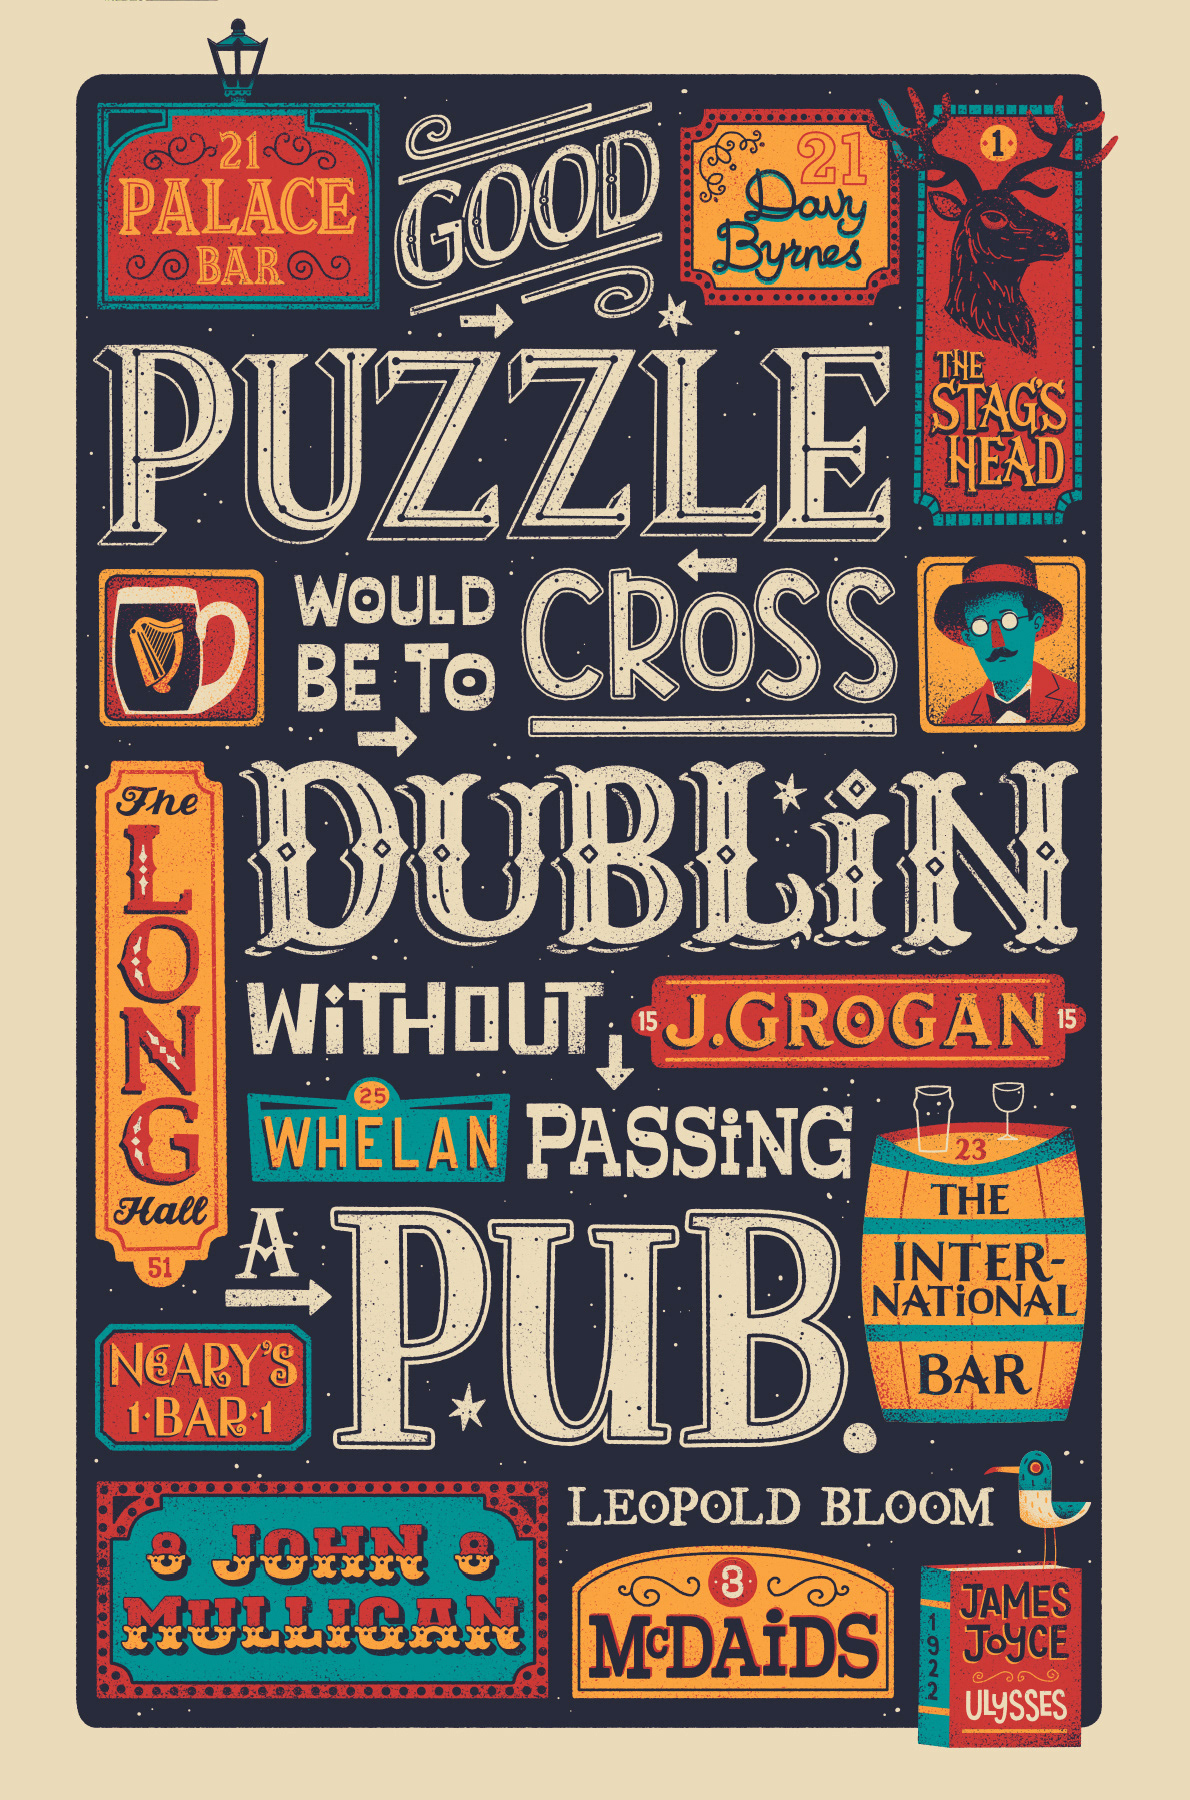 James Joyce quote illustrated by Steve Simpson - Good Puzzle